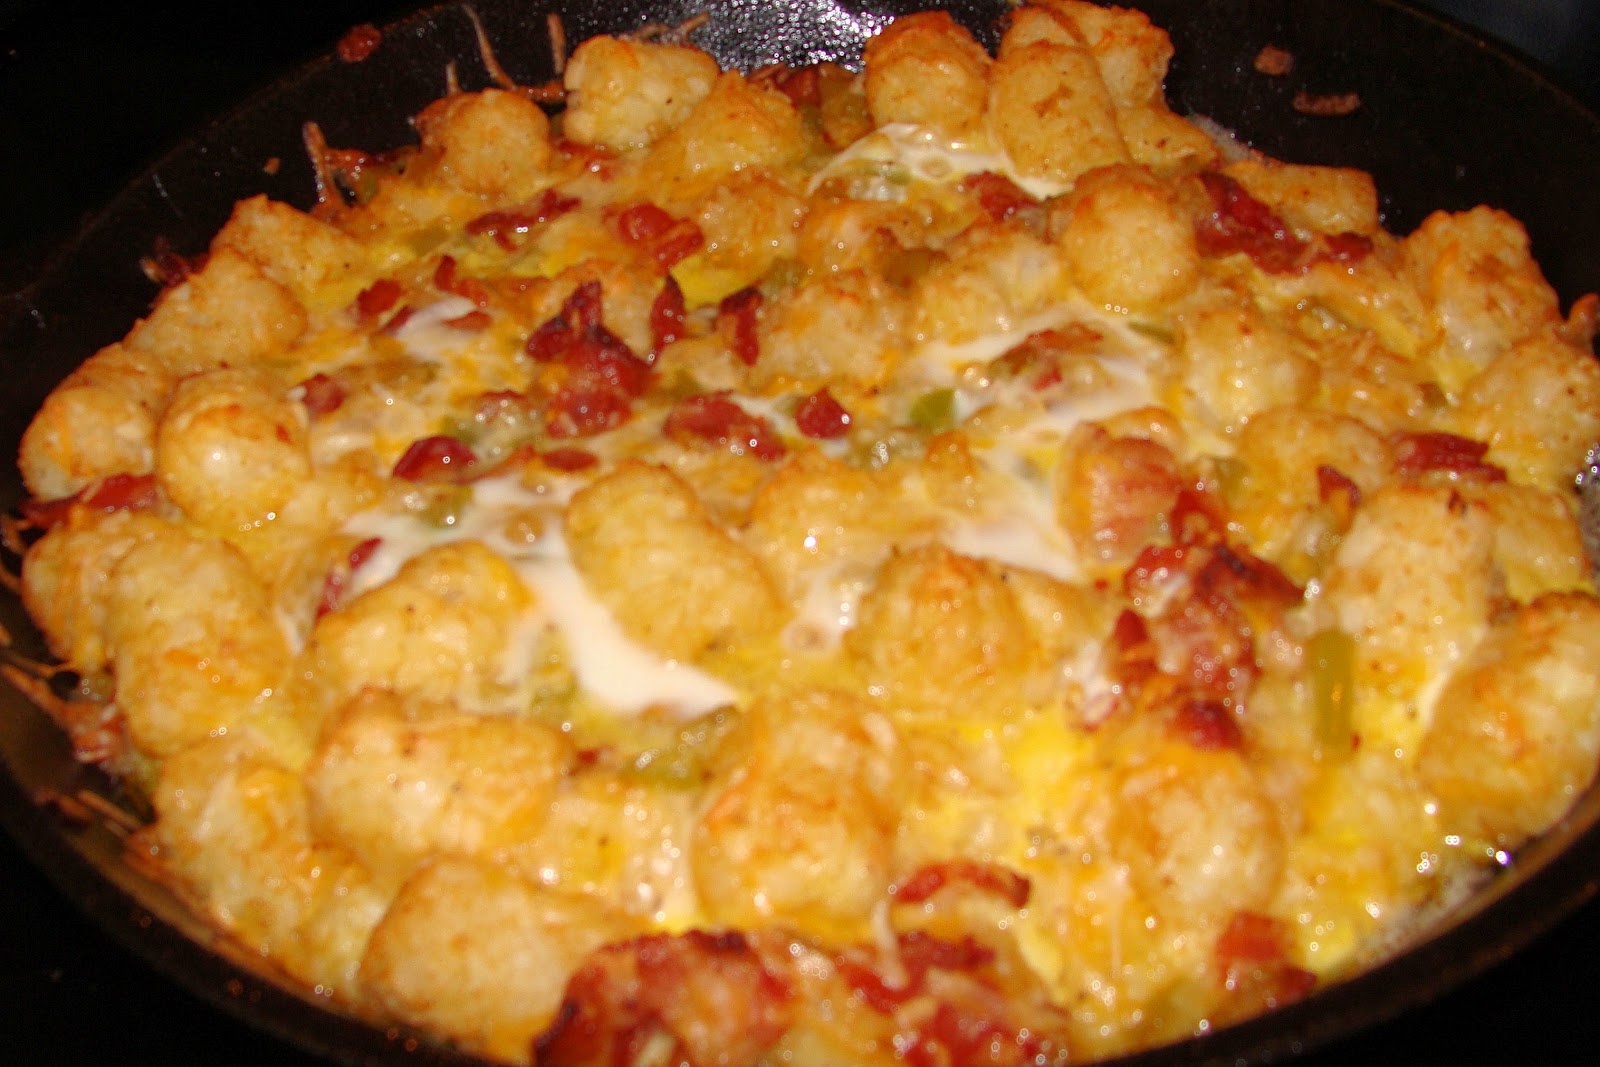 Iron Pot Cooking: Bacon, Egg, and Tater Tot Casserole